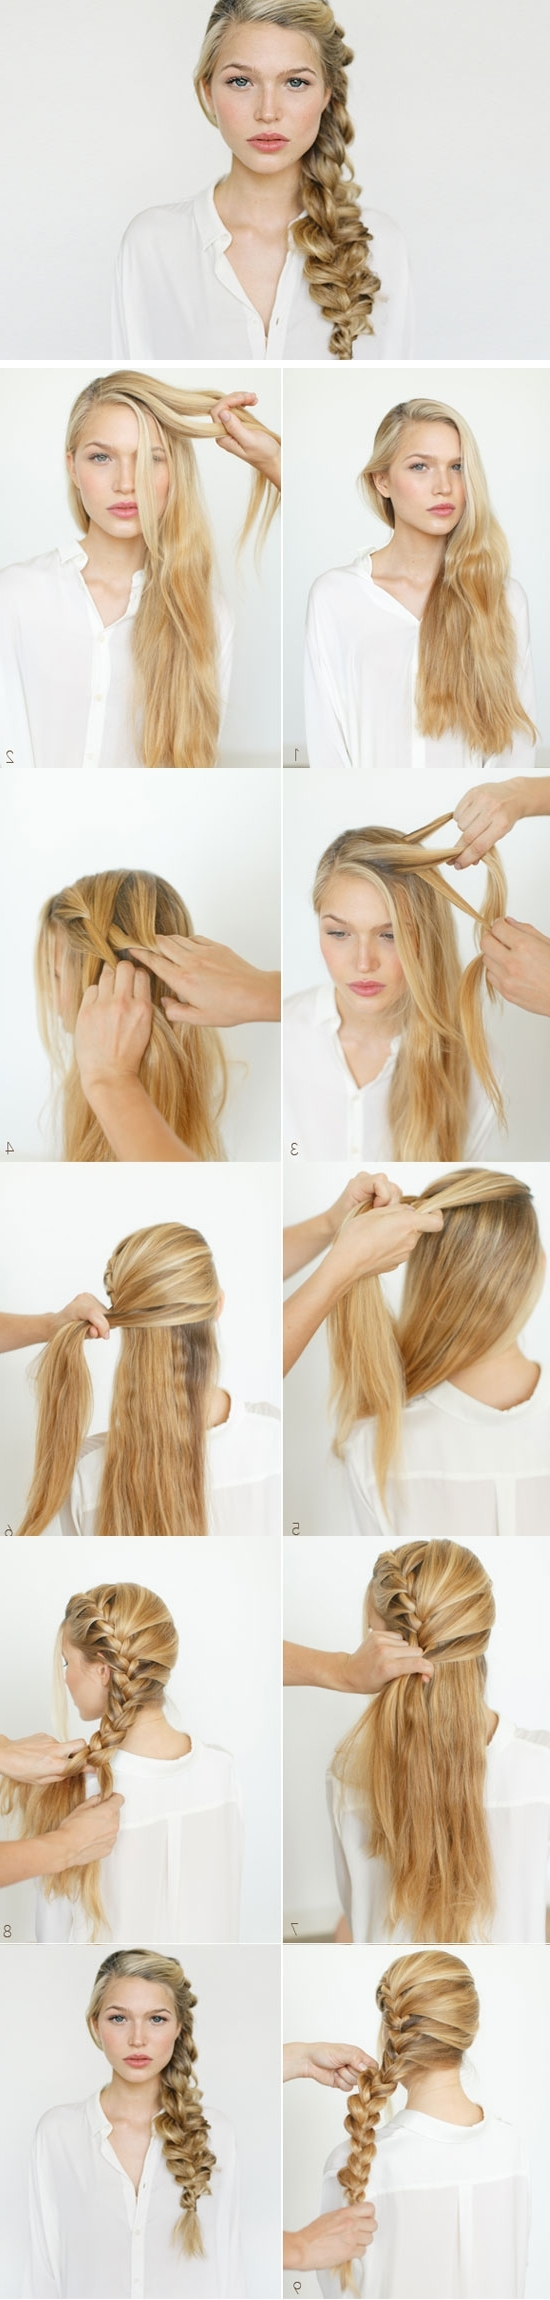 Easy Diy Wedding Hairstyles For Long Hair With Regard To Most Up To Date Diy Wedding Updos For Long Hair (Gallery 8 of 15)